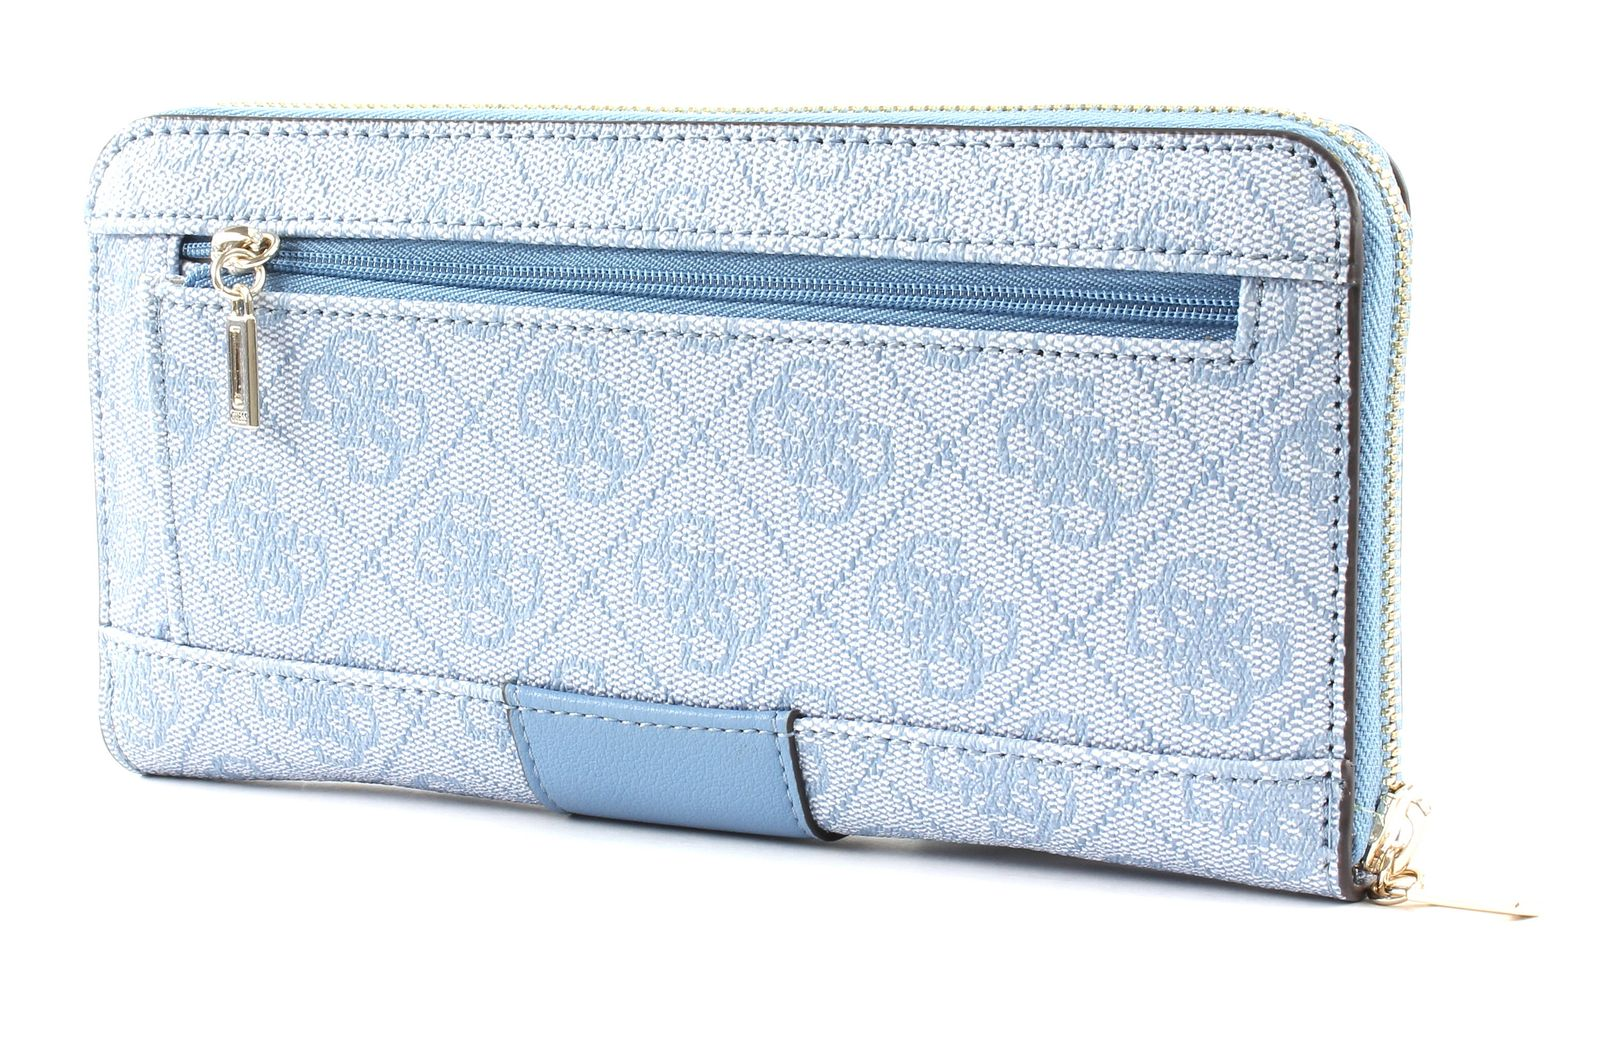 GUESS Bluebelle SLG Large Zip Around Blue